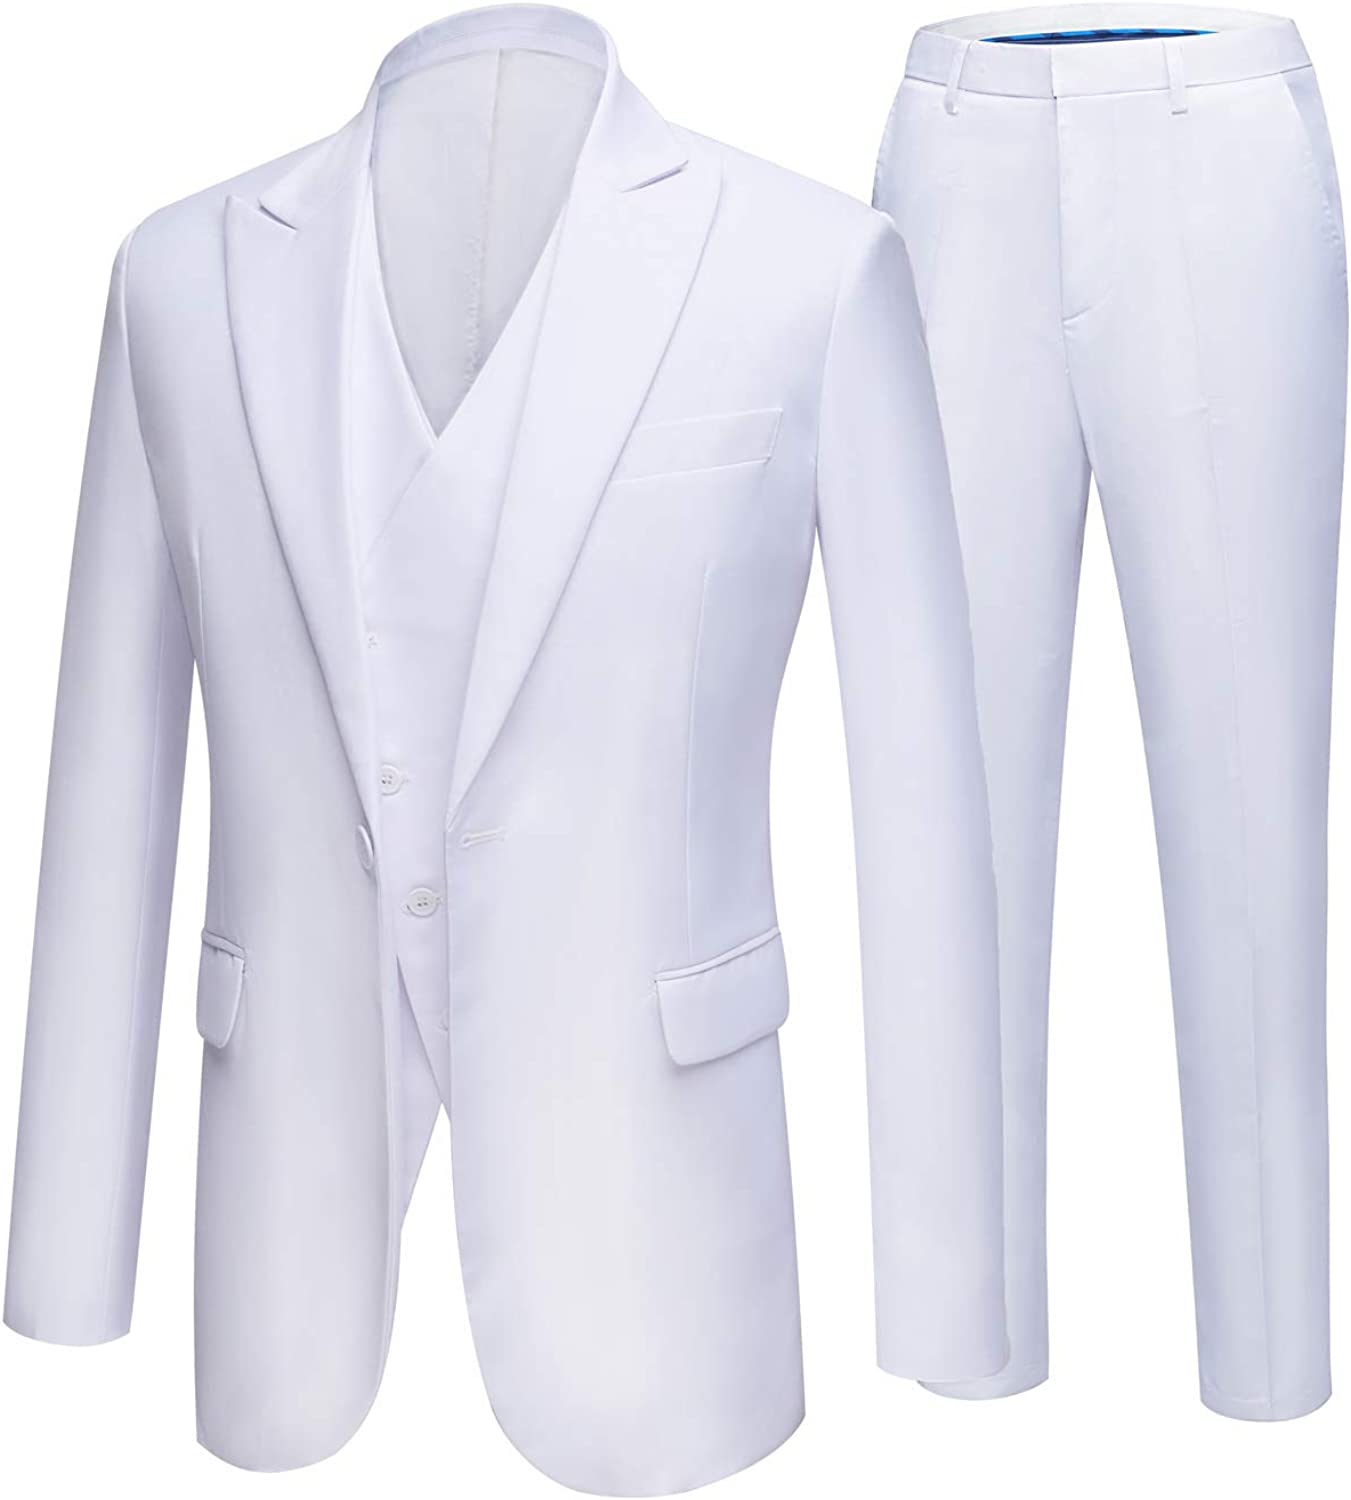 Men's Suit 3-Piece One Button Blazer Jacket Flat Front Pants Wedding Groom Suit